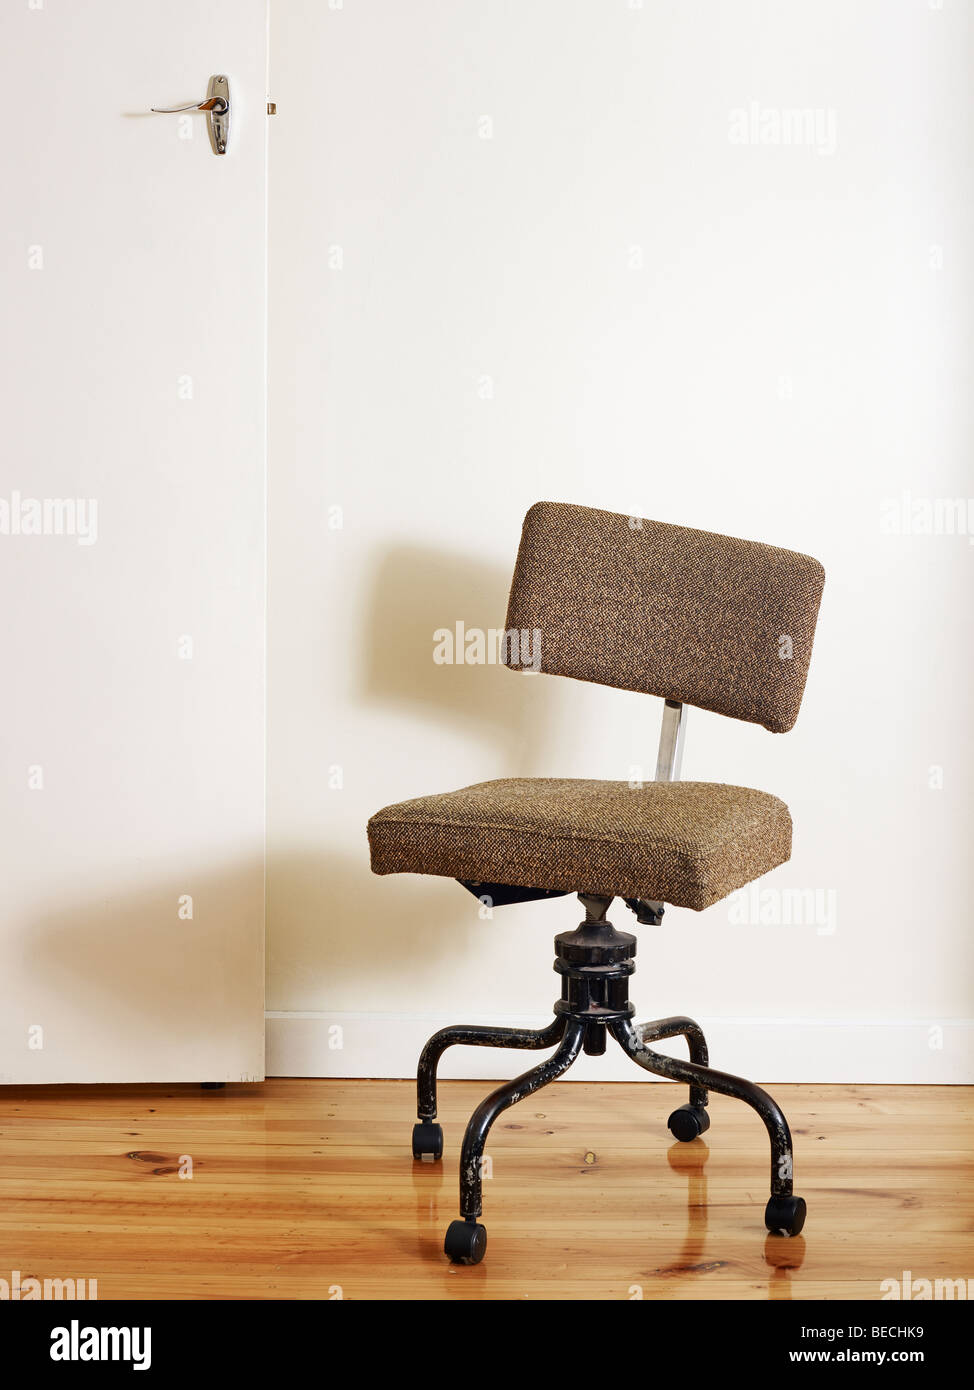 Old office chair Bedroom Old Office Chair Alamy Old Office Chair Stock Photo 26092845 Alamy